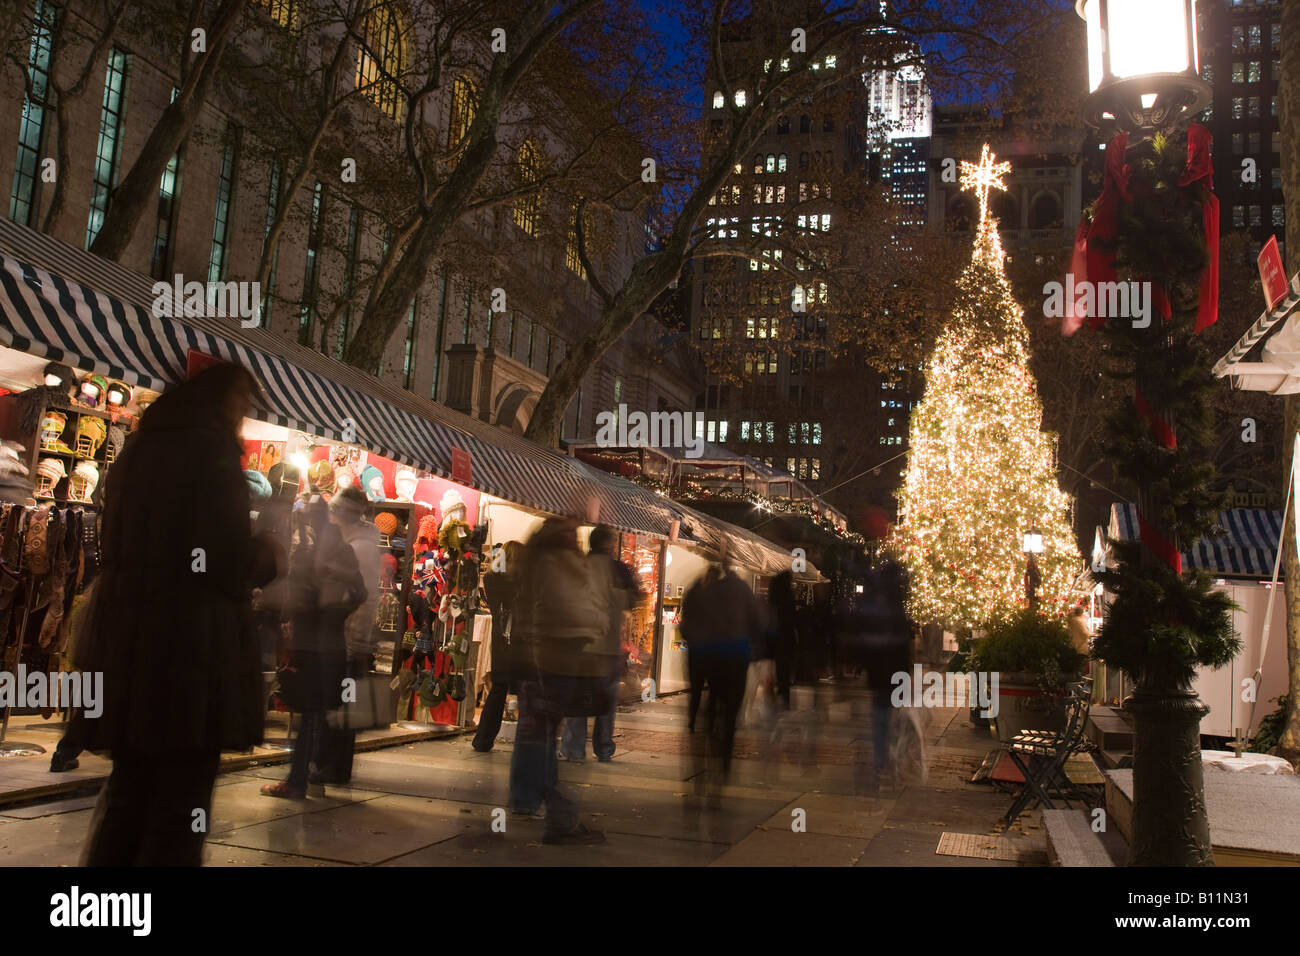 Christmas Market New York City.Christmas Tree Lights Bryant Park Christmas Market Manhattan